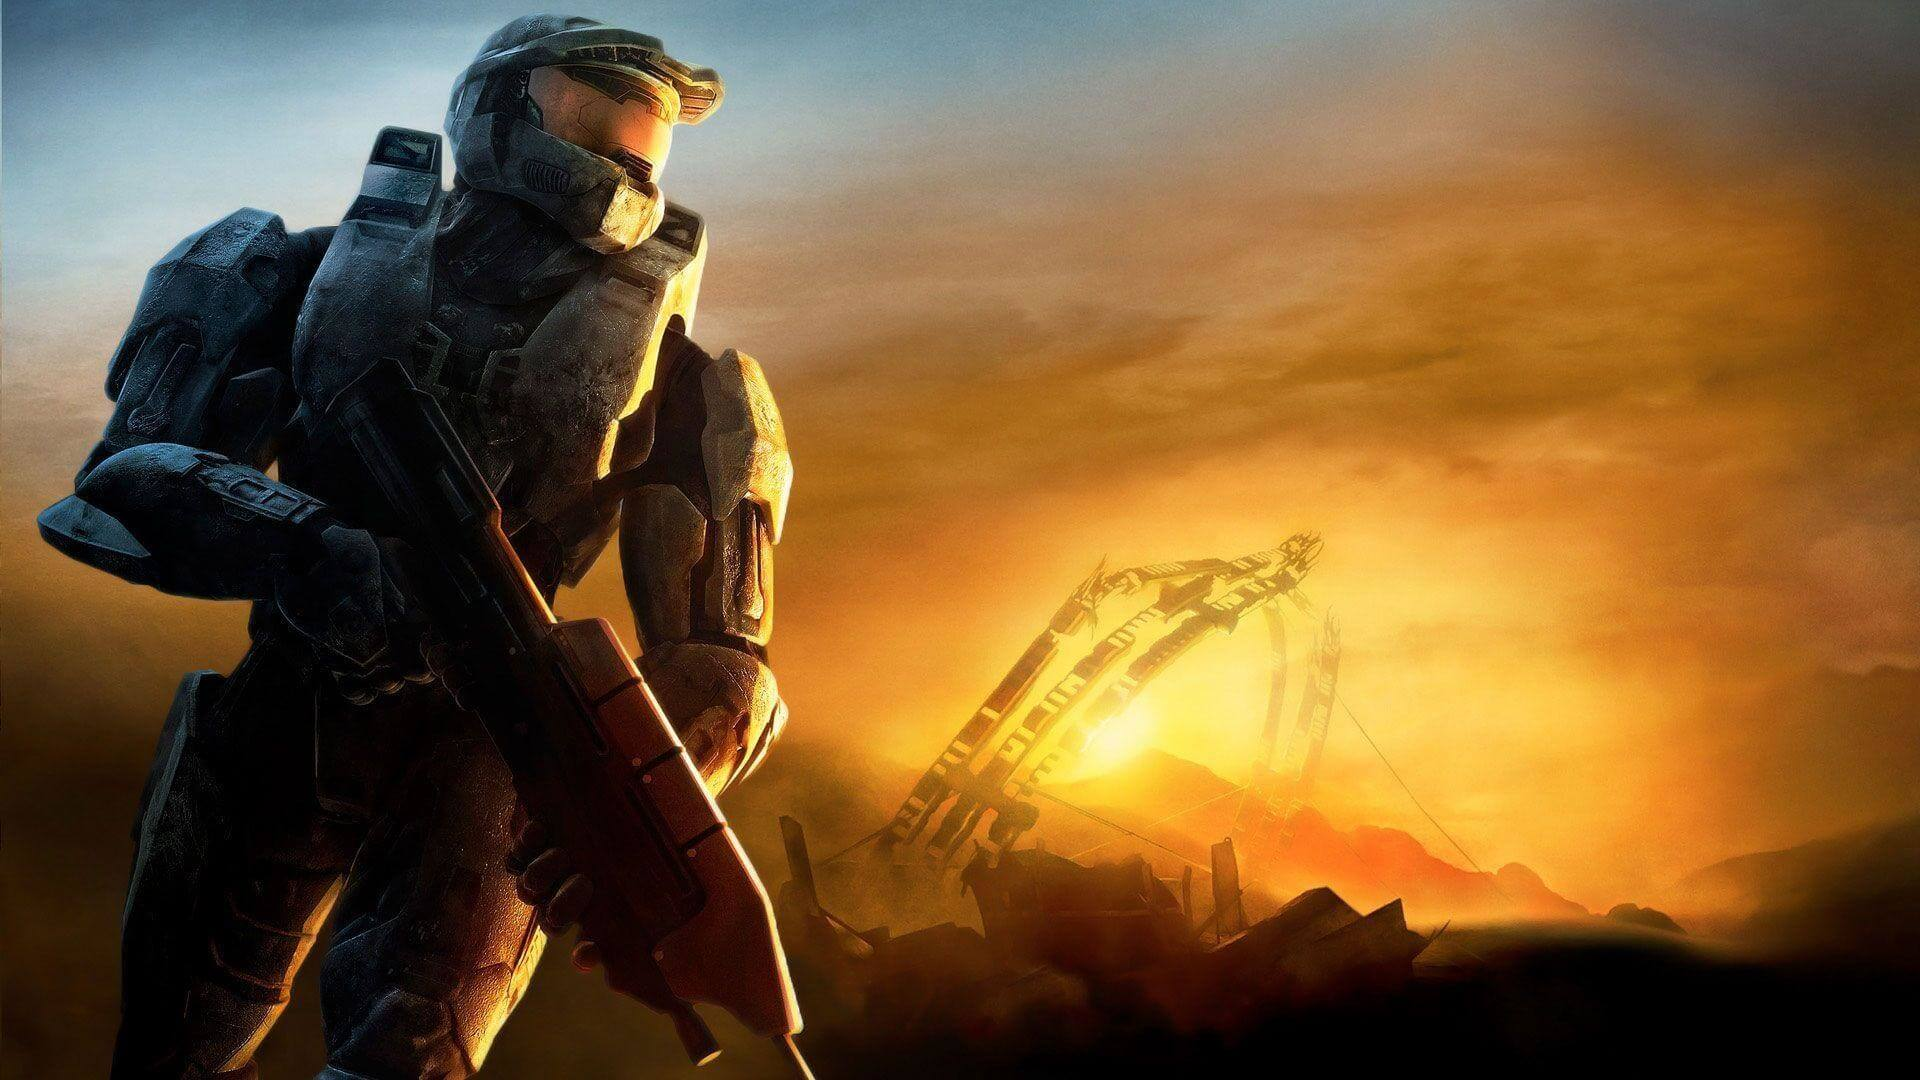 Halo Infinite Concept Art Reveals New Character and Mjolnir Armor